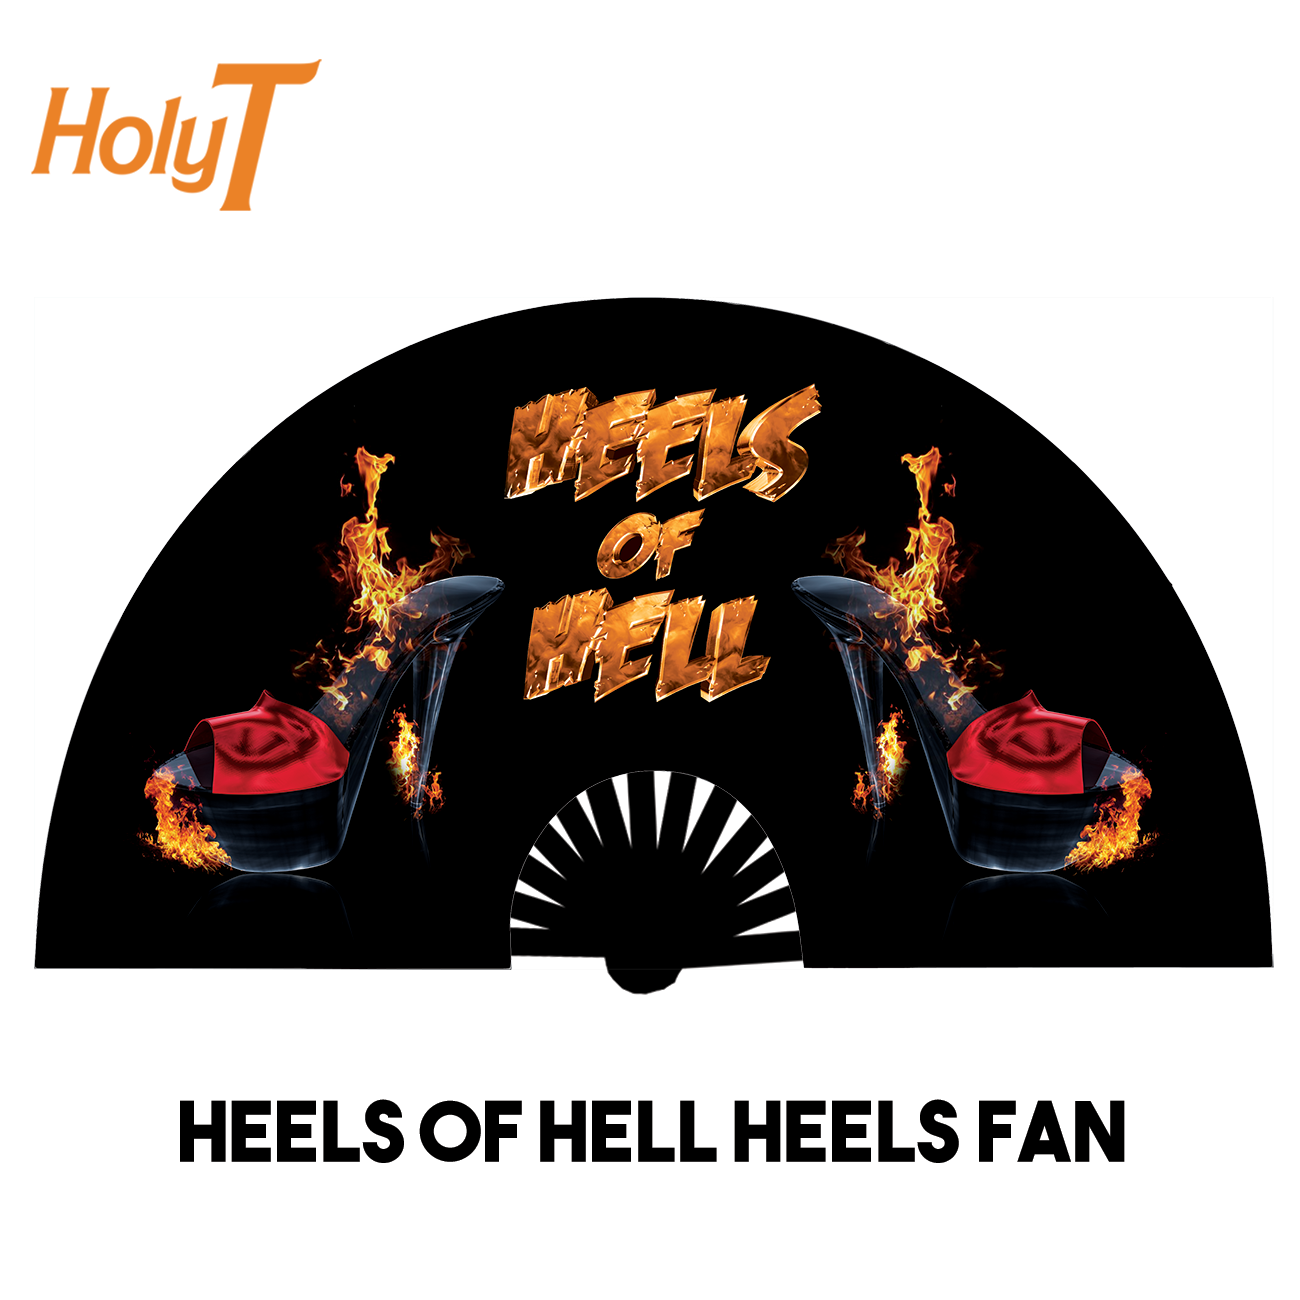 Heels of Hell Heels Large Fan (Black)